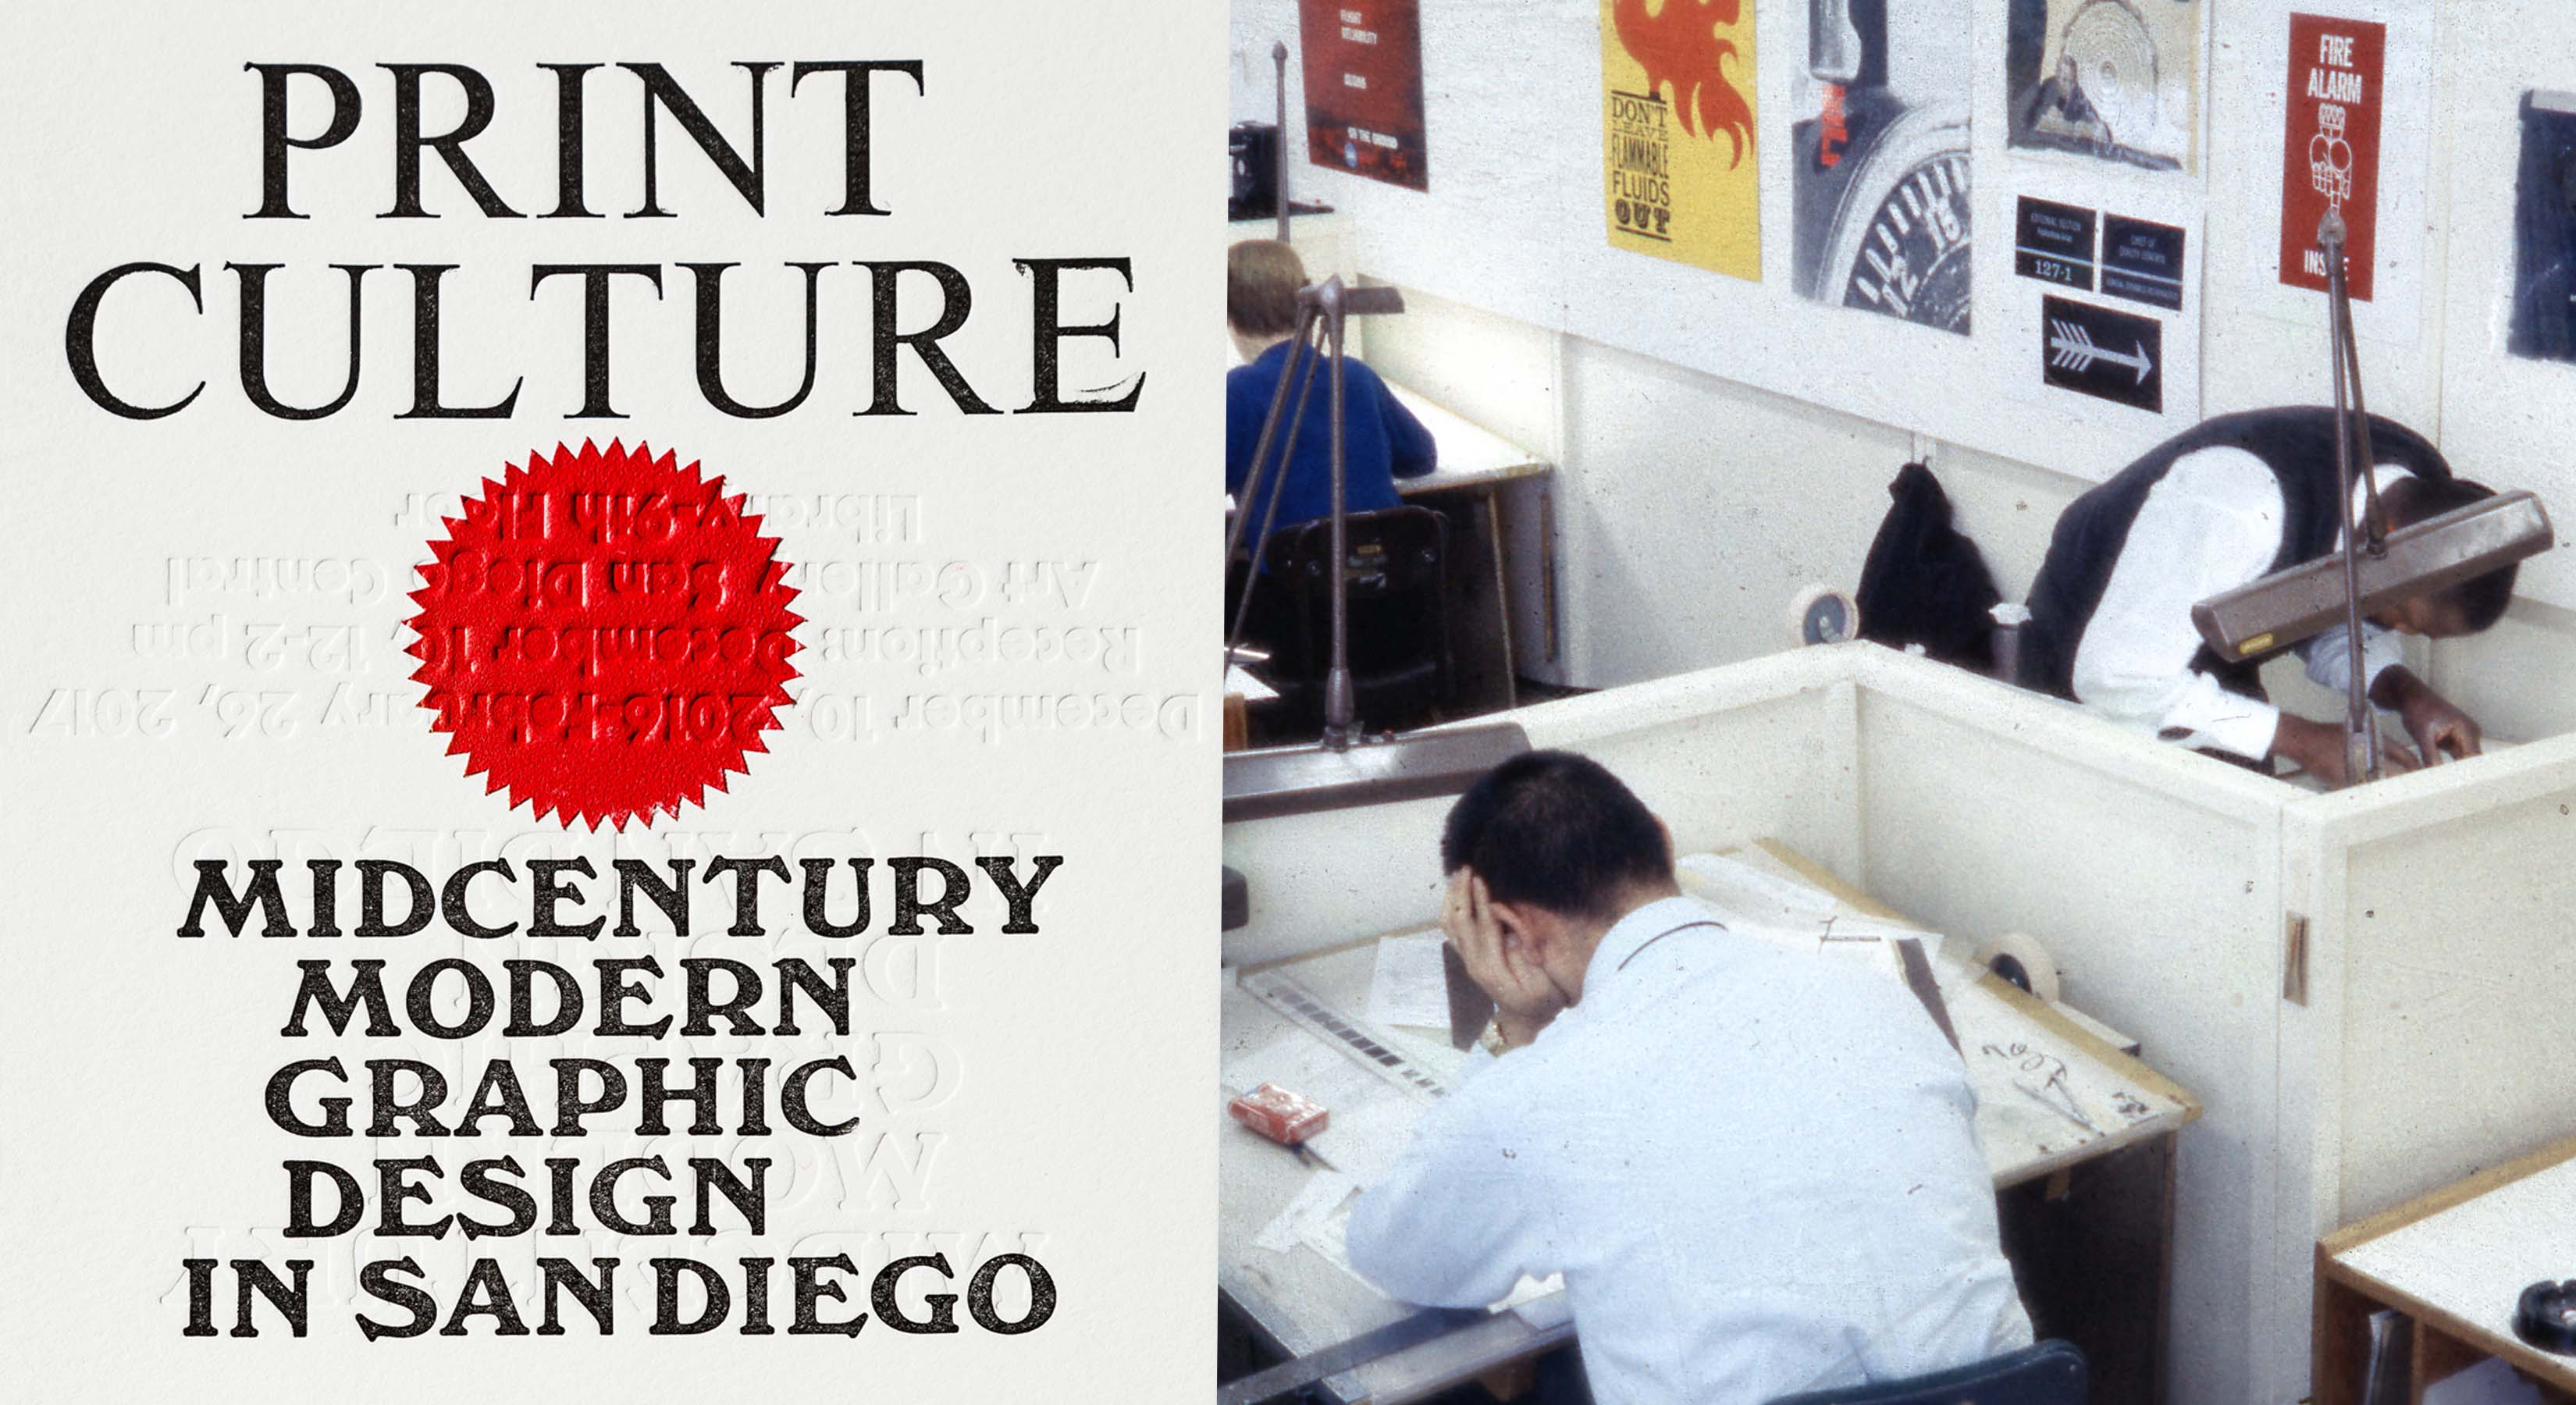 Print Culture: Midcentury Modern Graphic Design